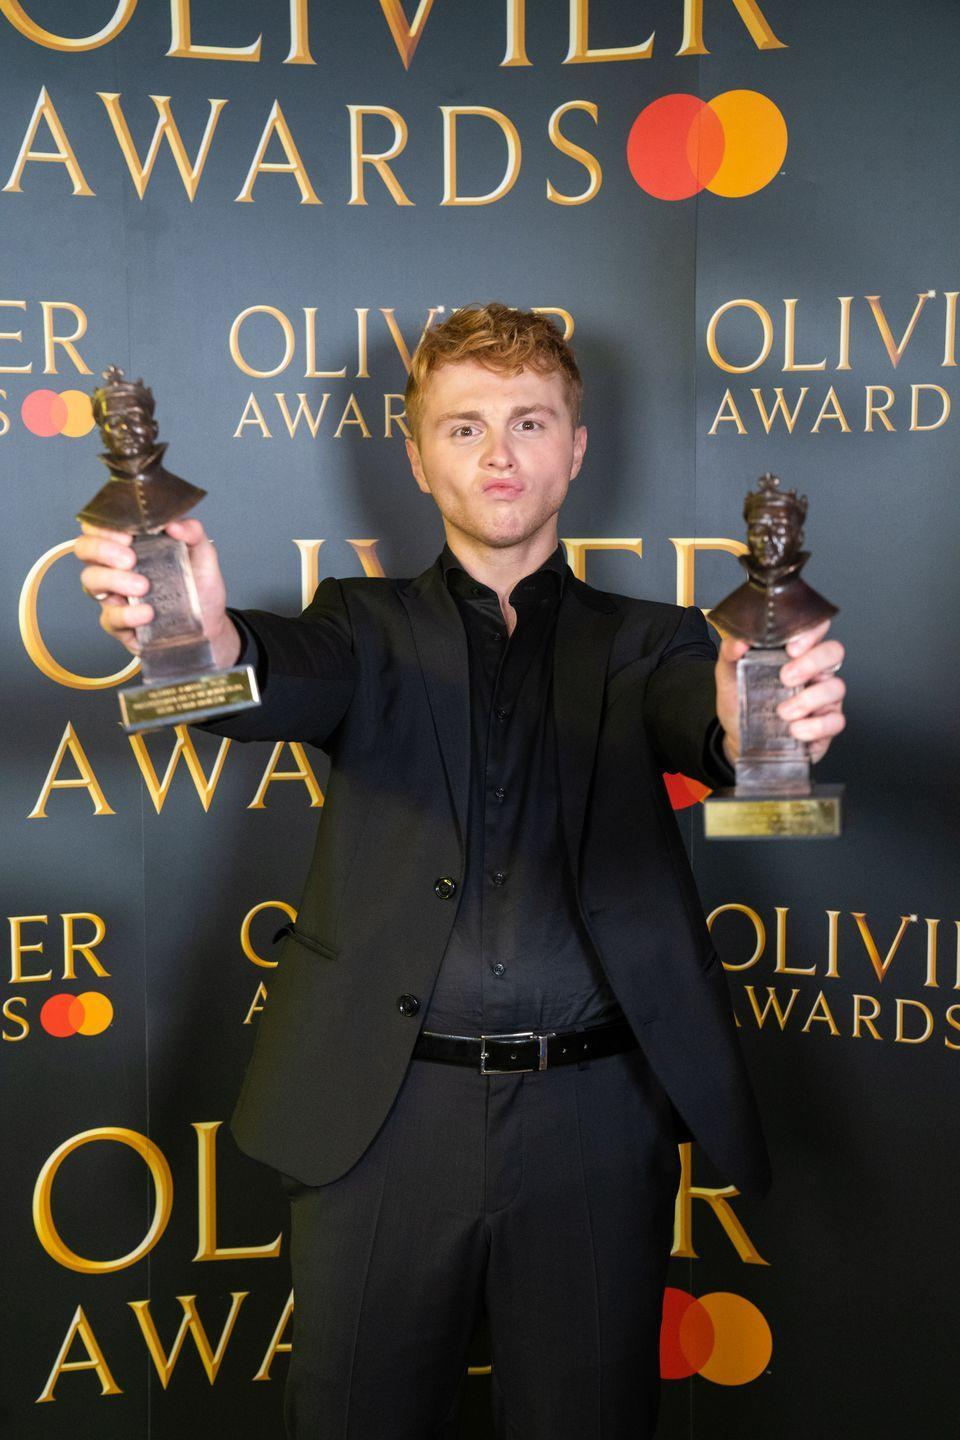 Photo credit: Society of London Theatre - Getty Images